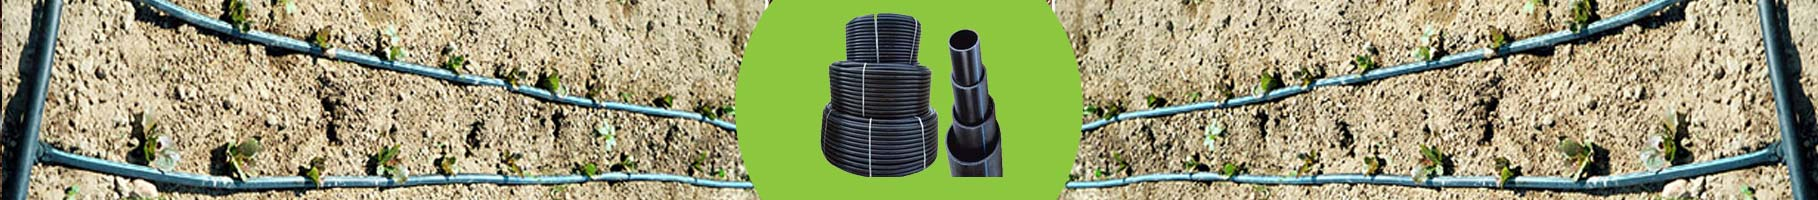 HDPE Pipes  | Khedut Irrigation, Leading manufacturer & Exporter of Drip Irrigation System, Landscapping Irringation Systems, Manufacturer & Exports of Drip Irrigation System, Emitting Pipes (Inline Lateral), Online Lateral, Drippers, Screen Filter, Disc Filter, Hydrocyclone Filter, Sand/Gravel Filter, Venturi, Fertilizer Tank, Drip Accessories, Sprinkler System, Landscapping Irrigation, Easy Tape, HDPE Pipes, Other Irrigation Products, Commercial, Agriculture & Industrial Landscape, Gold Irrigation Systems, irrigation, sprinkler, system, rotor, rotary sprinklers, watering, commercial irrigation, drip irrigation, residential irrigation, turf, contractor, landscaping, lawn watering, lawn sprinklers, gardening, spray head, controllers, valves, Drip Accessories, Sprinkler Accessories, pipes, irrigation fittings, irrigation, pvc fitting, filters.